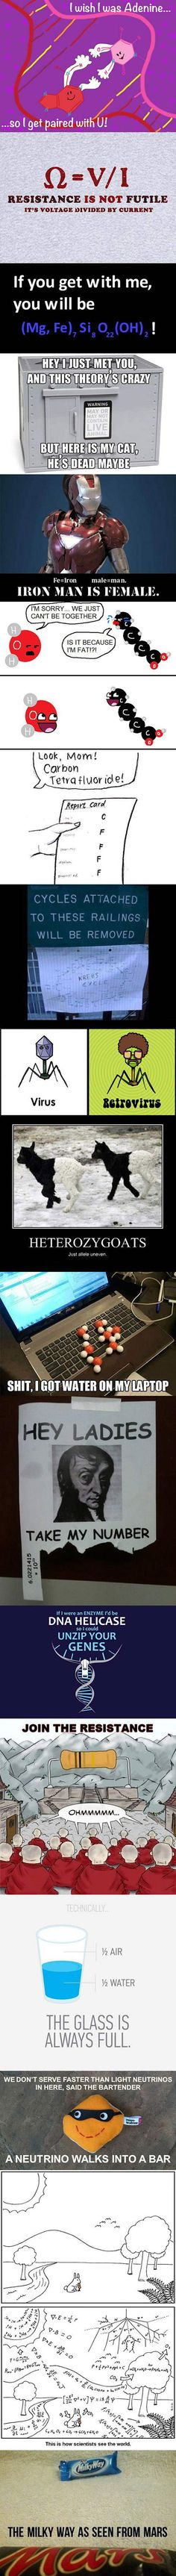 Science humor.